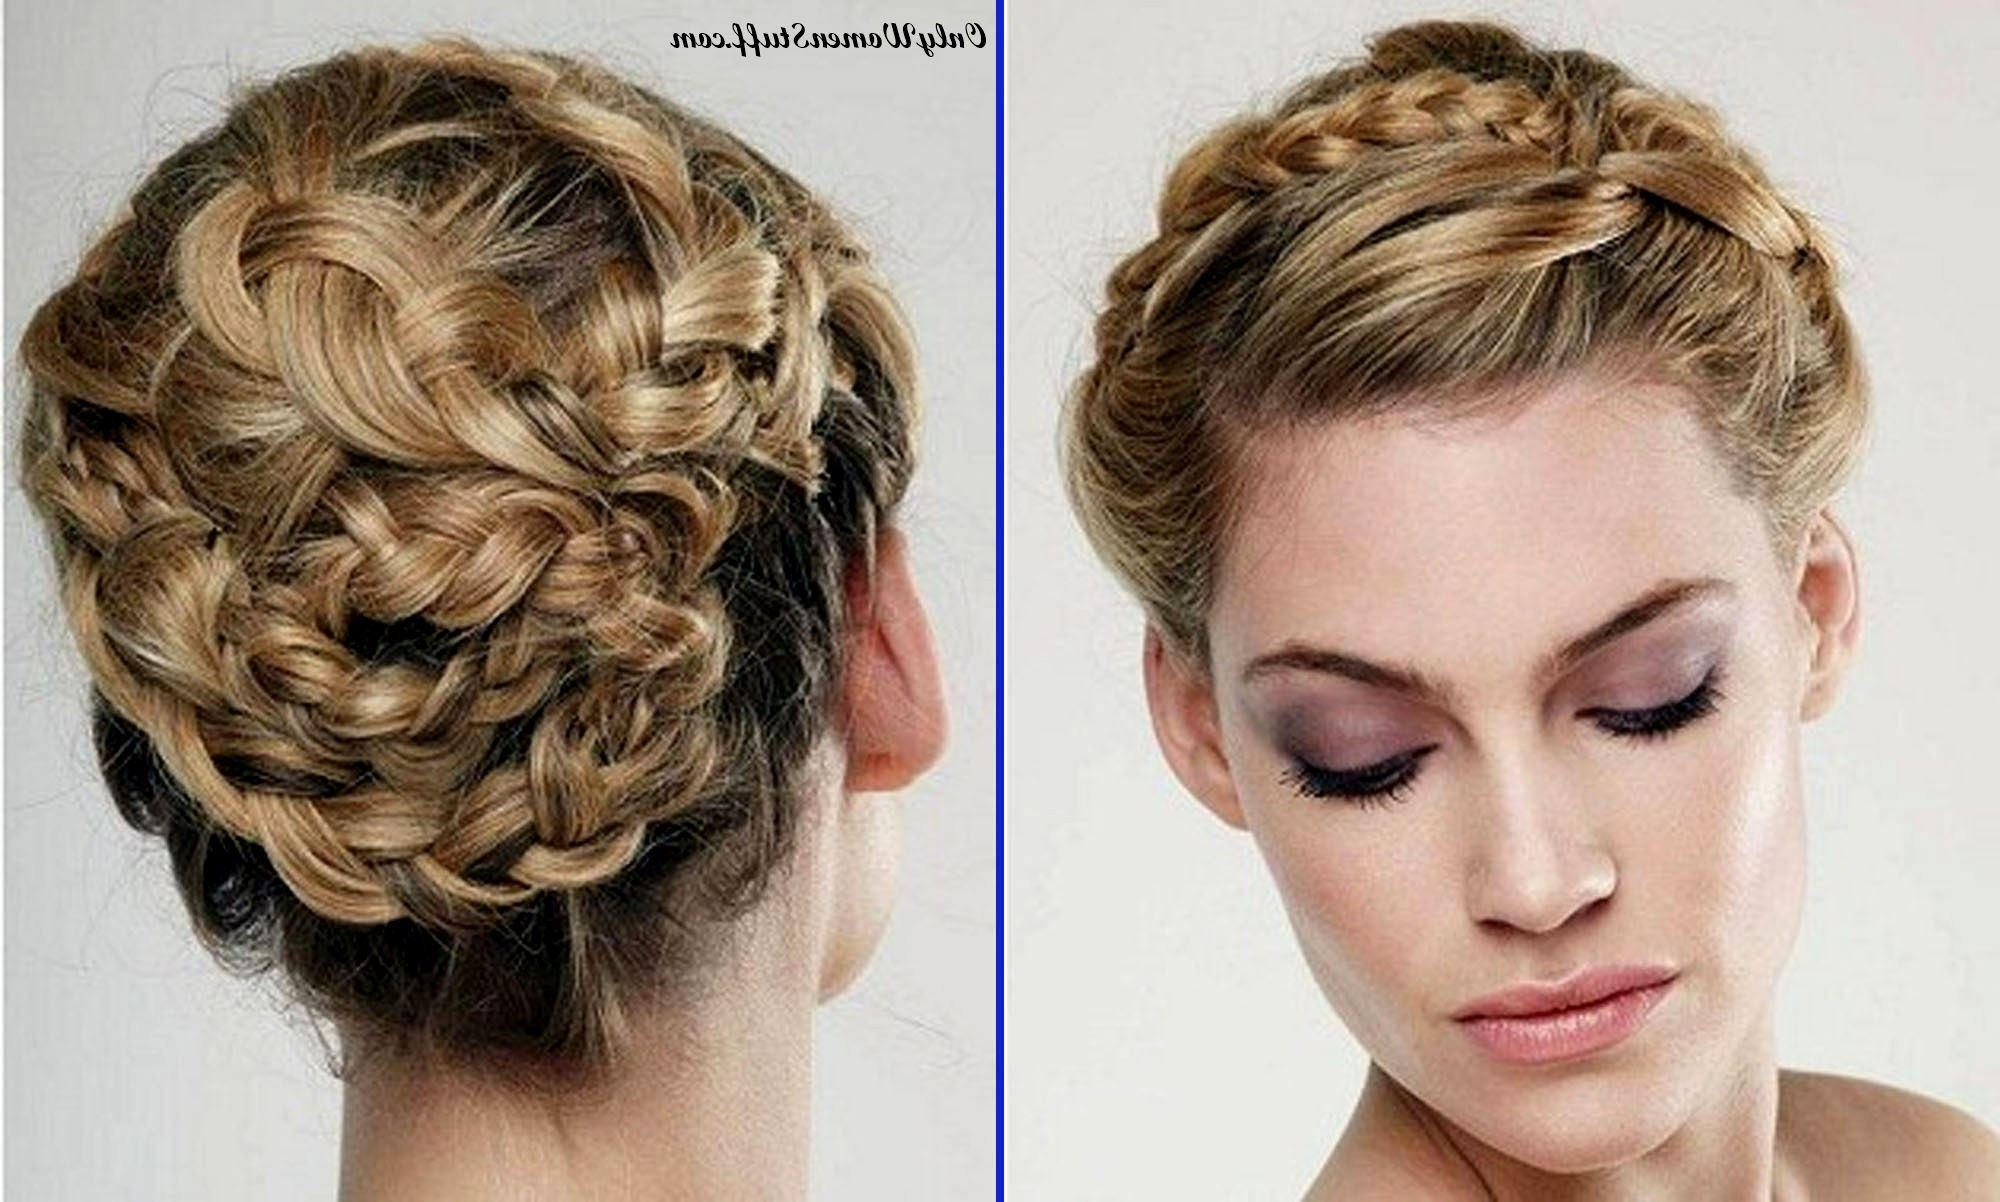 50+ Easy Prom Hairstyles & Updos Ideas (stepstep) With Regard To Cute Updo Hairstyles For Long Hair (View 12 of 15)